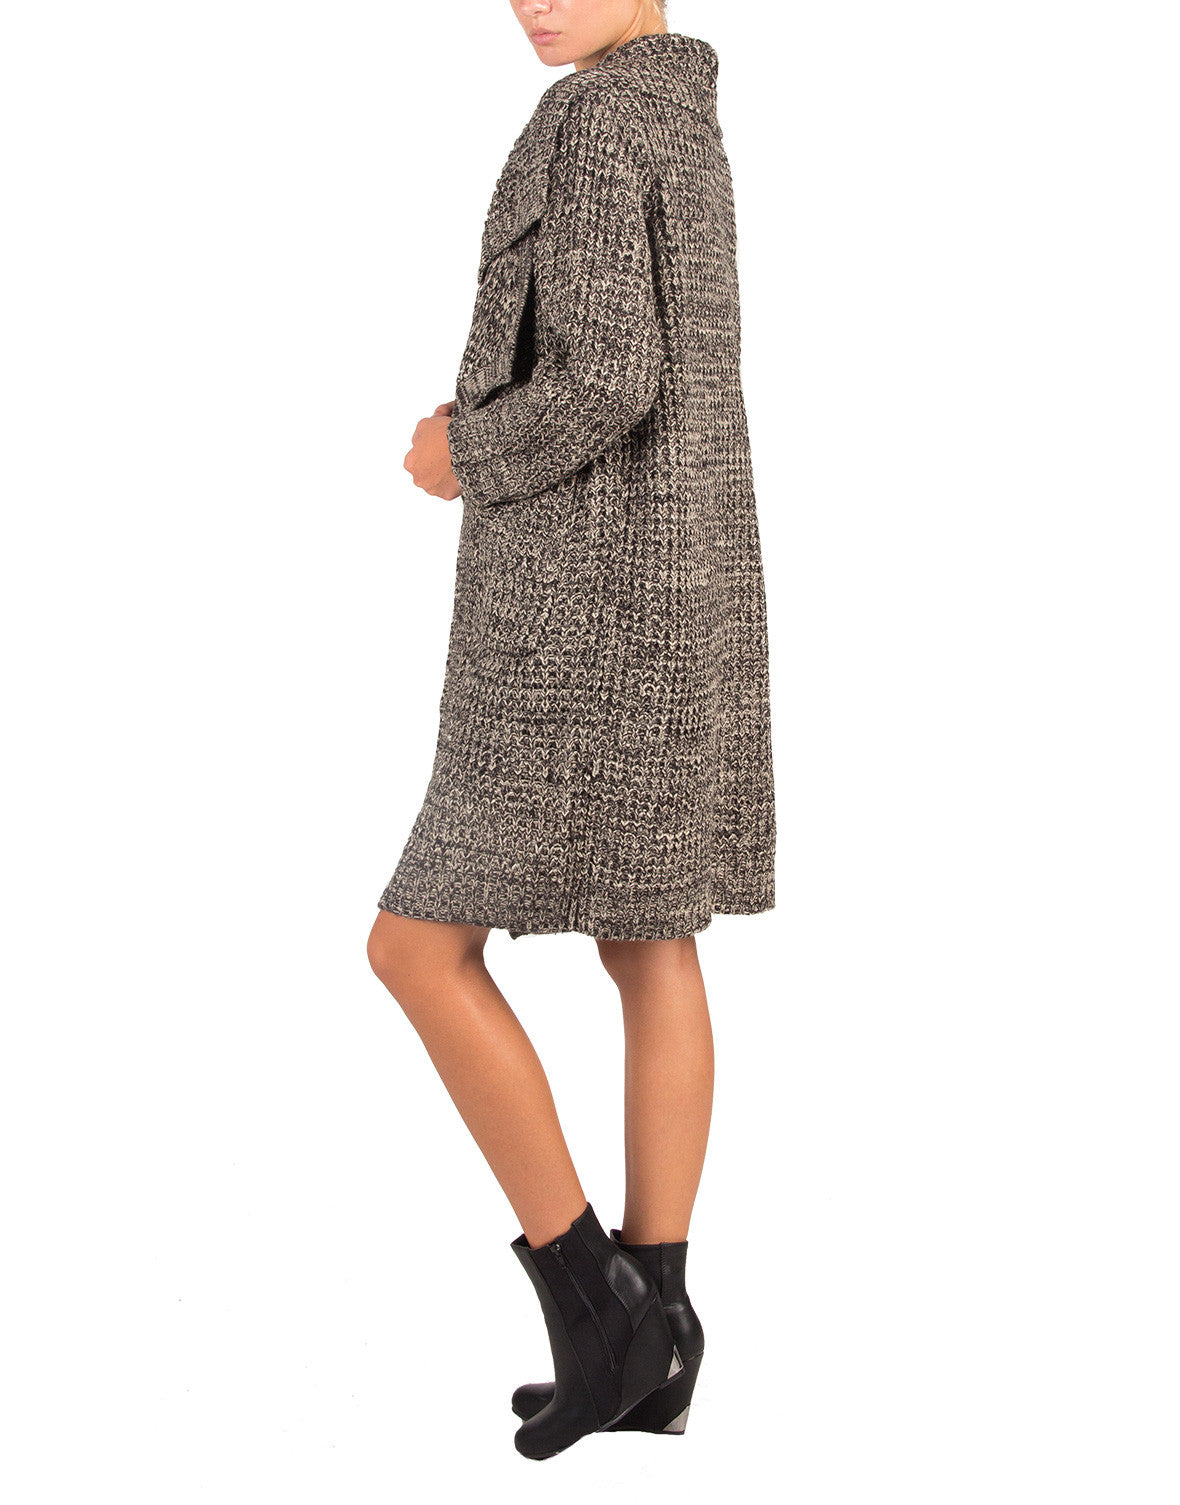 Double Collared Knit Cardigan - Mind Code KJ7266-Black/Gray